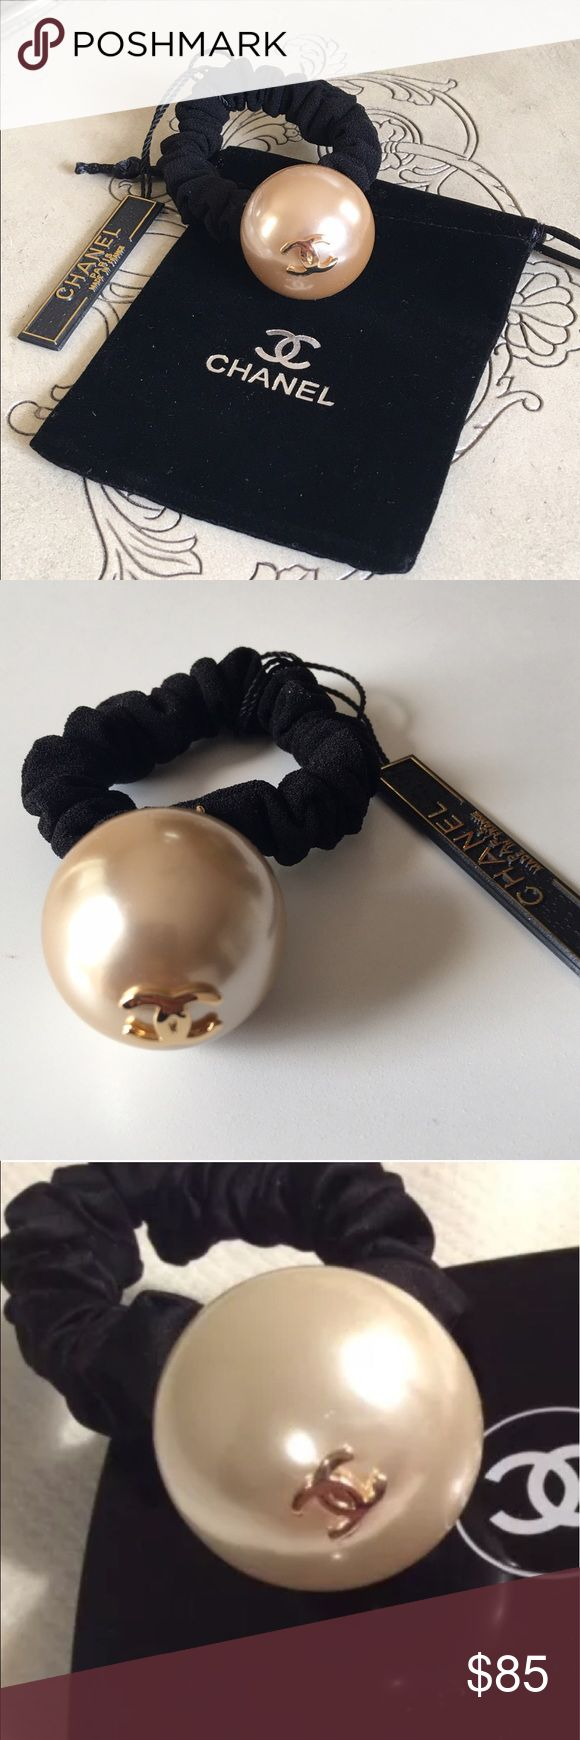 CHANEL NEW HAIR PEARL SCRUNCHIE  ELASTIC HOLDER AUTHENTIC VIP CLUB GIFT, GIVEN WITH PURCHASE   MADE  EXCLUSIVELY FOR CHANEL, THE LABEL ON BACK. LUXARY ITEM AND CLASSIC LOOK!!  NO LONGER AVAILABLE!!!   LISTING IS IVORY, ALSO AVAILABLE IN LIGHT SILVER. CHANEL Accessories Hair Accessories